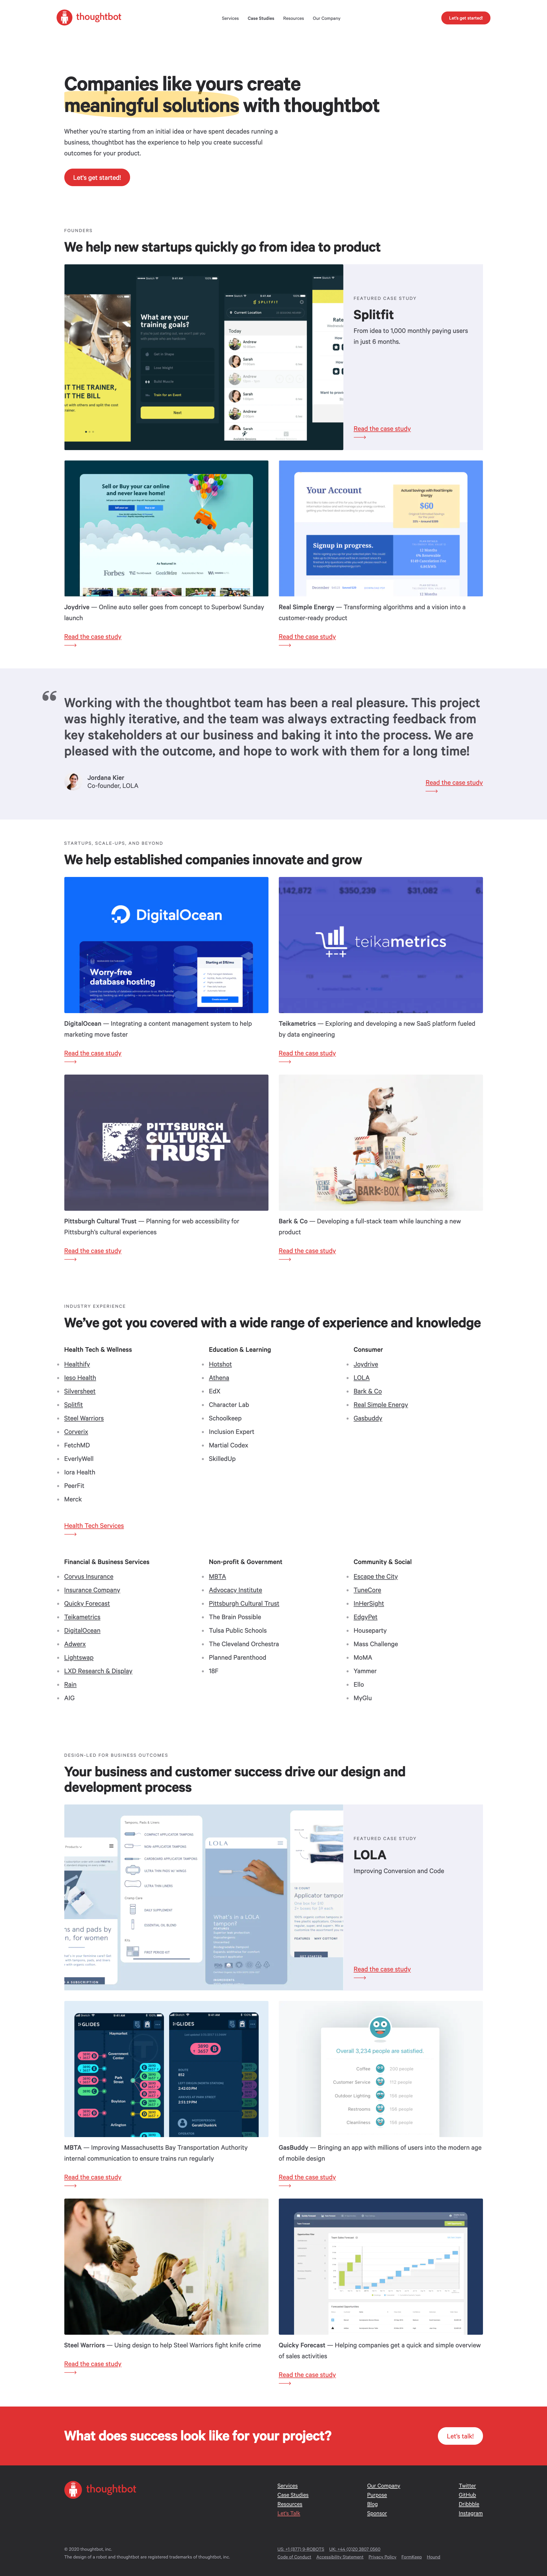 A screenshot of the Case Studies page on thoughtbot.com